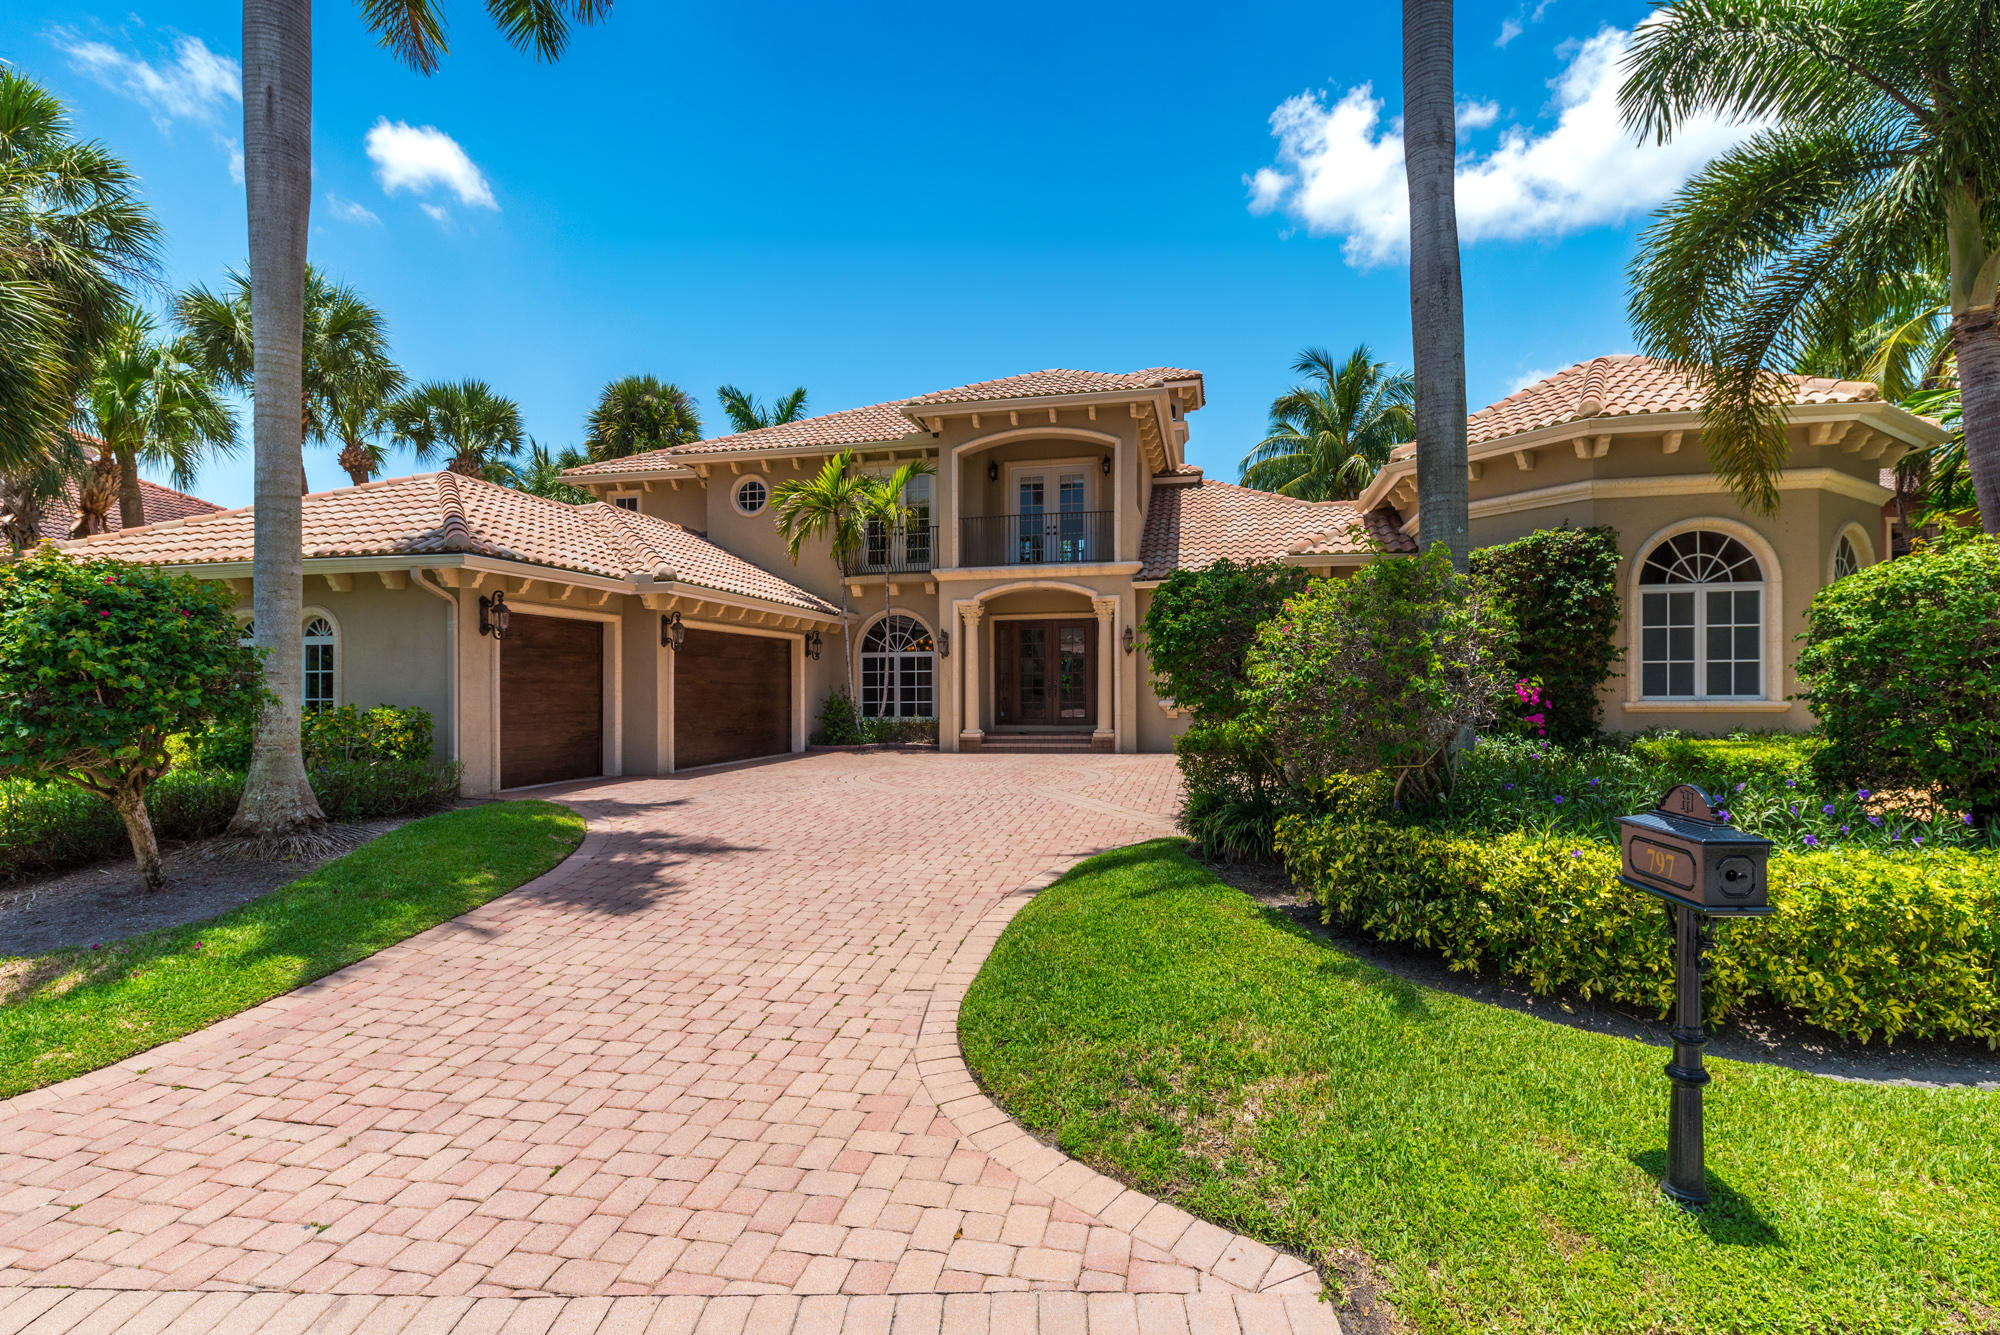 797 Harbour Isles Place, North Palm Beach, Florida 33410, 4 Bedrooms Bedrooms, ,4 BathroomsBathrooms,A,Single family,Harbour Isles,RX-10540936